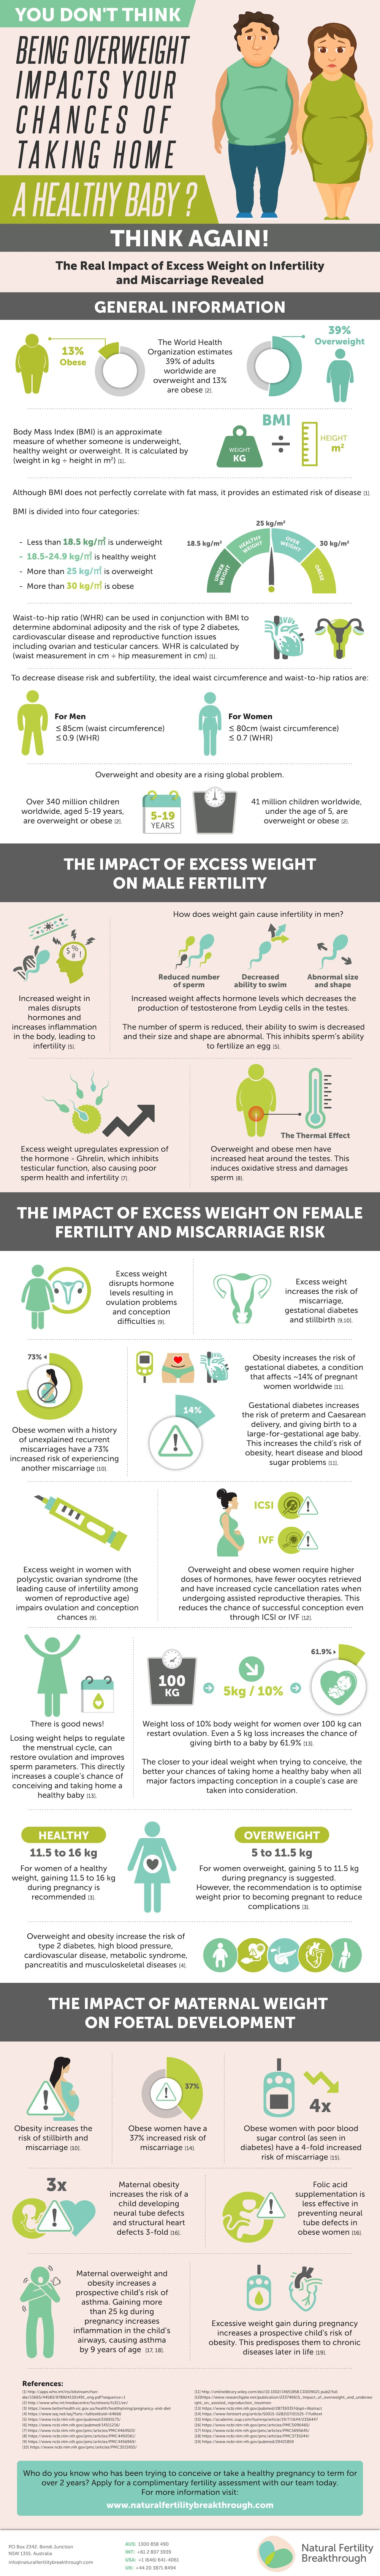 Impact-Excess-Weight-on-Fertility-Infographic_Losing-Weight-Increase-Your-Chances-of-Getting-Pregnant-by-Gabriela-Rosa-Fertility-Specialist.jpg